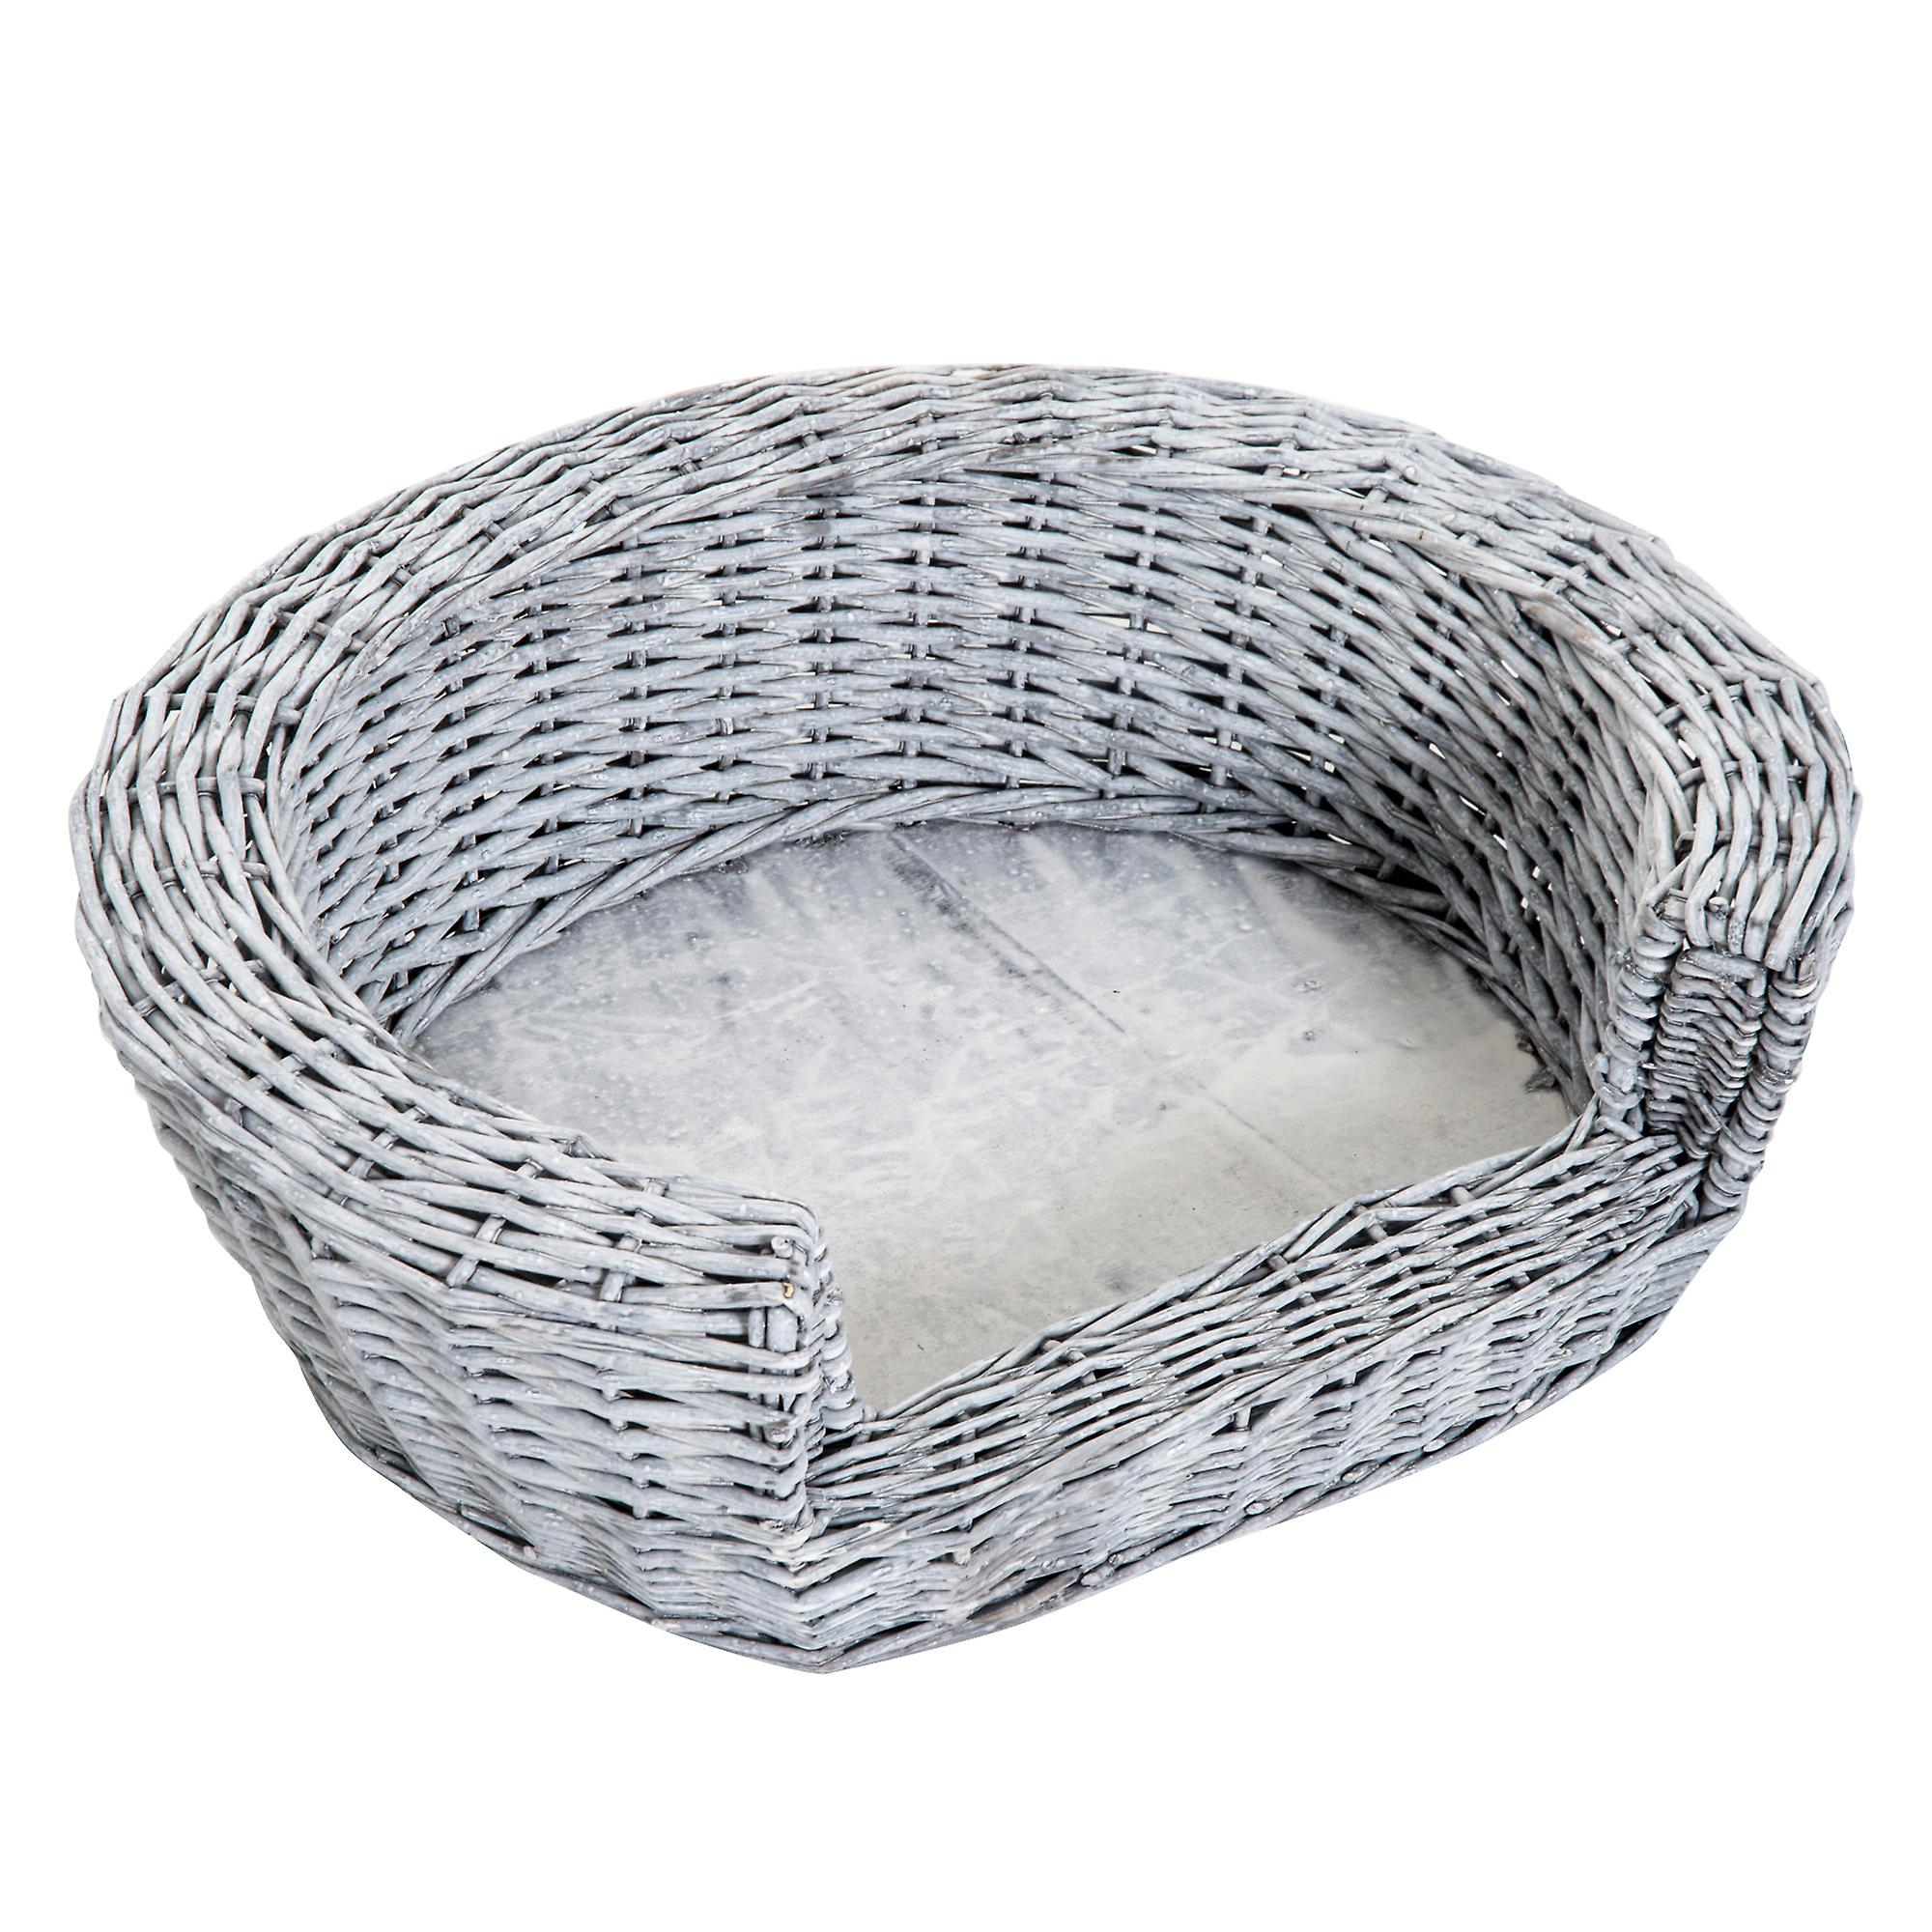 PawHut Elevated Dog Cat Couch Pet Basket Sofa Bed Rasied  Puppy Wicker Willow Rattan w/Cushion Grey